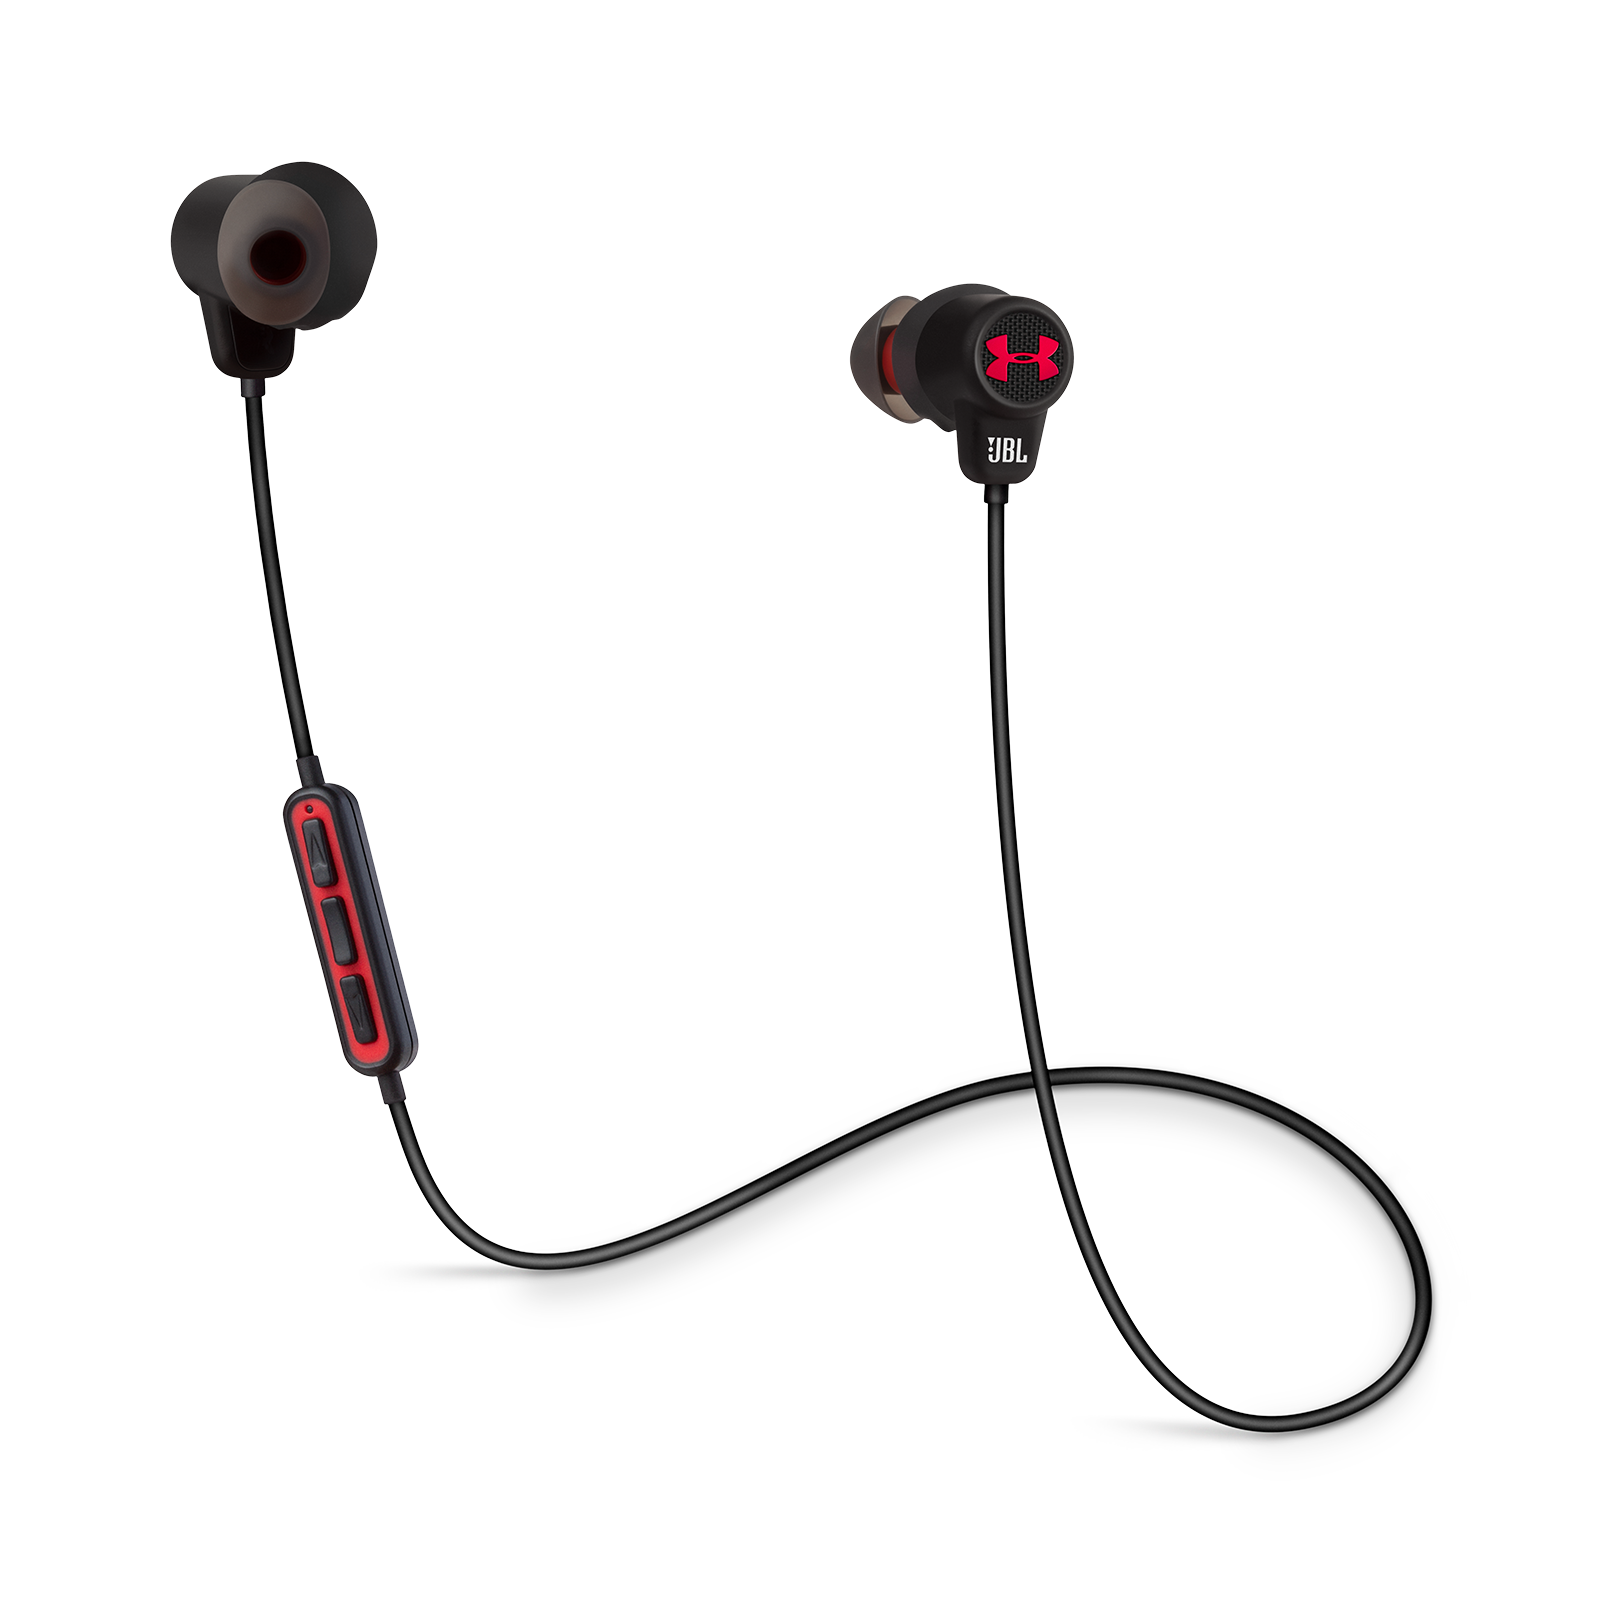 f4fb86cd5ab Under Armour Sport Wireless | Wireless in-ear headphones for athletes